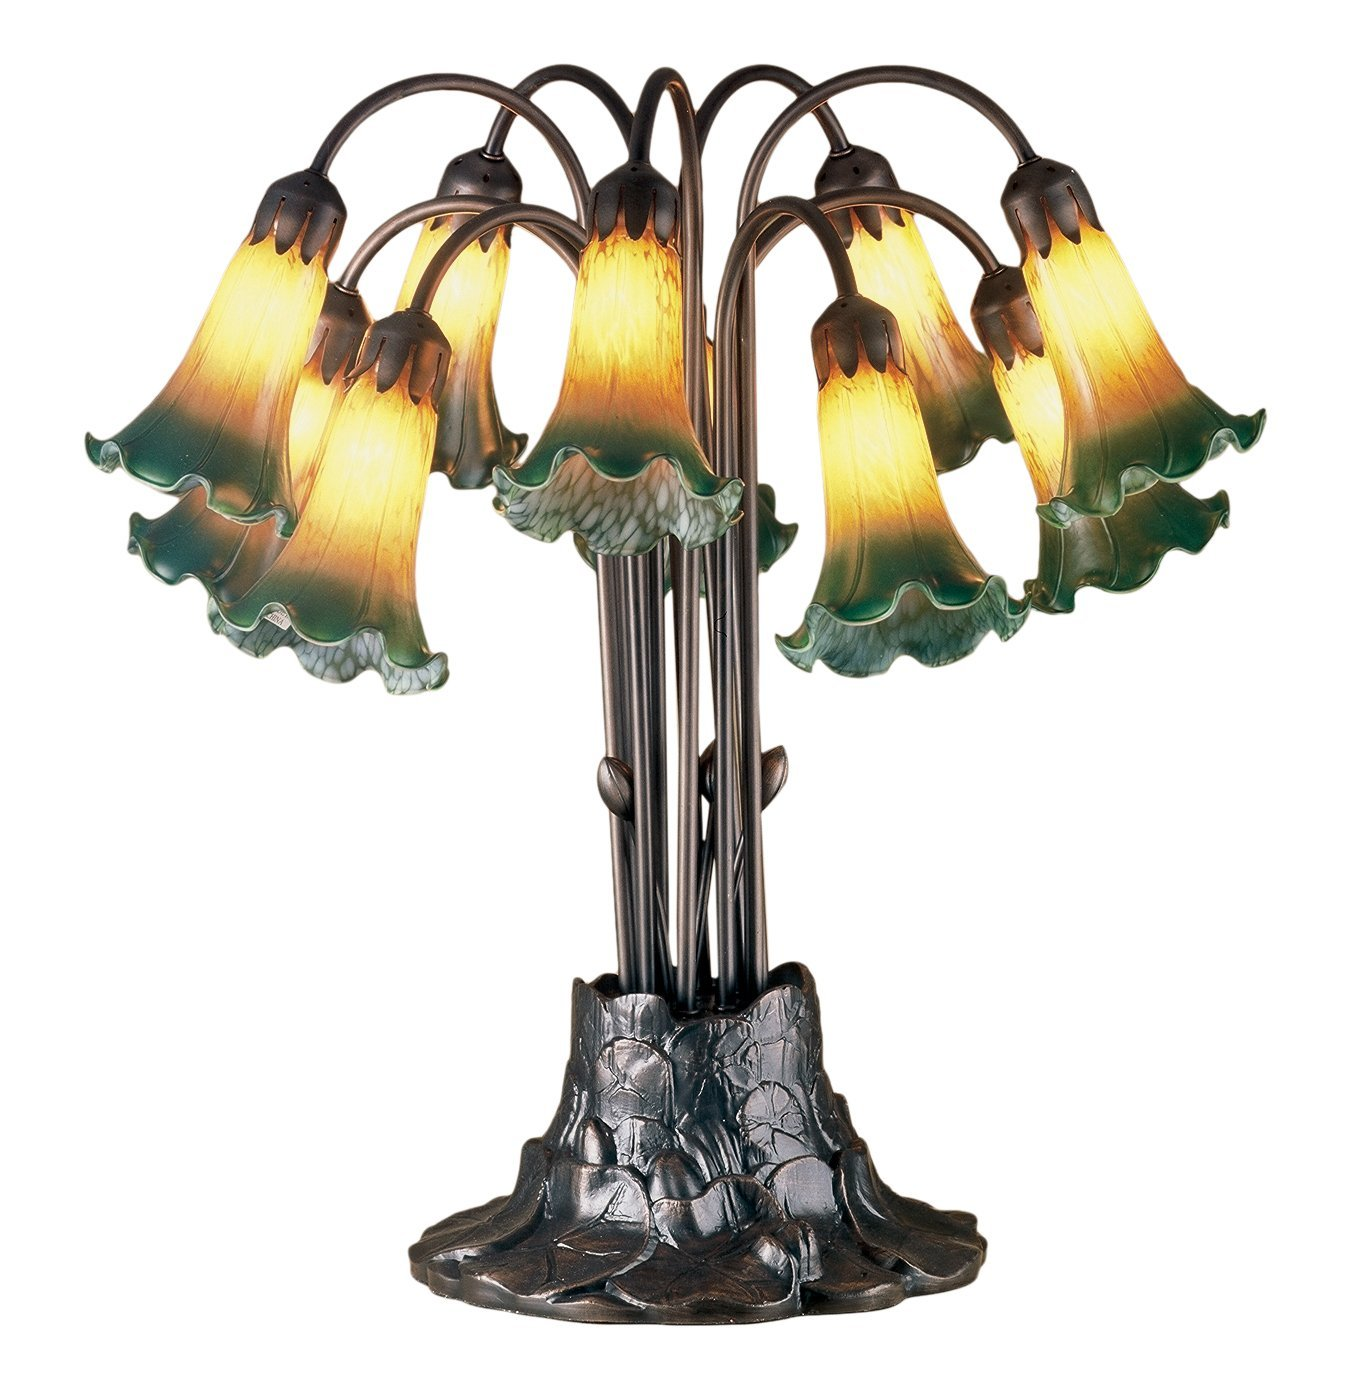 meyda tiffany pond lily light table lamp height amber accent lamps green entryway console cream colored nightstand corner elephant sculpture removable tray ikea high top small